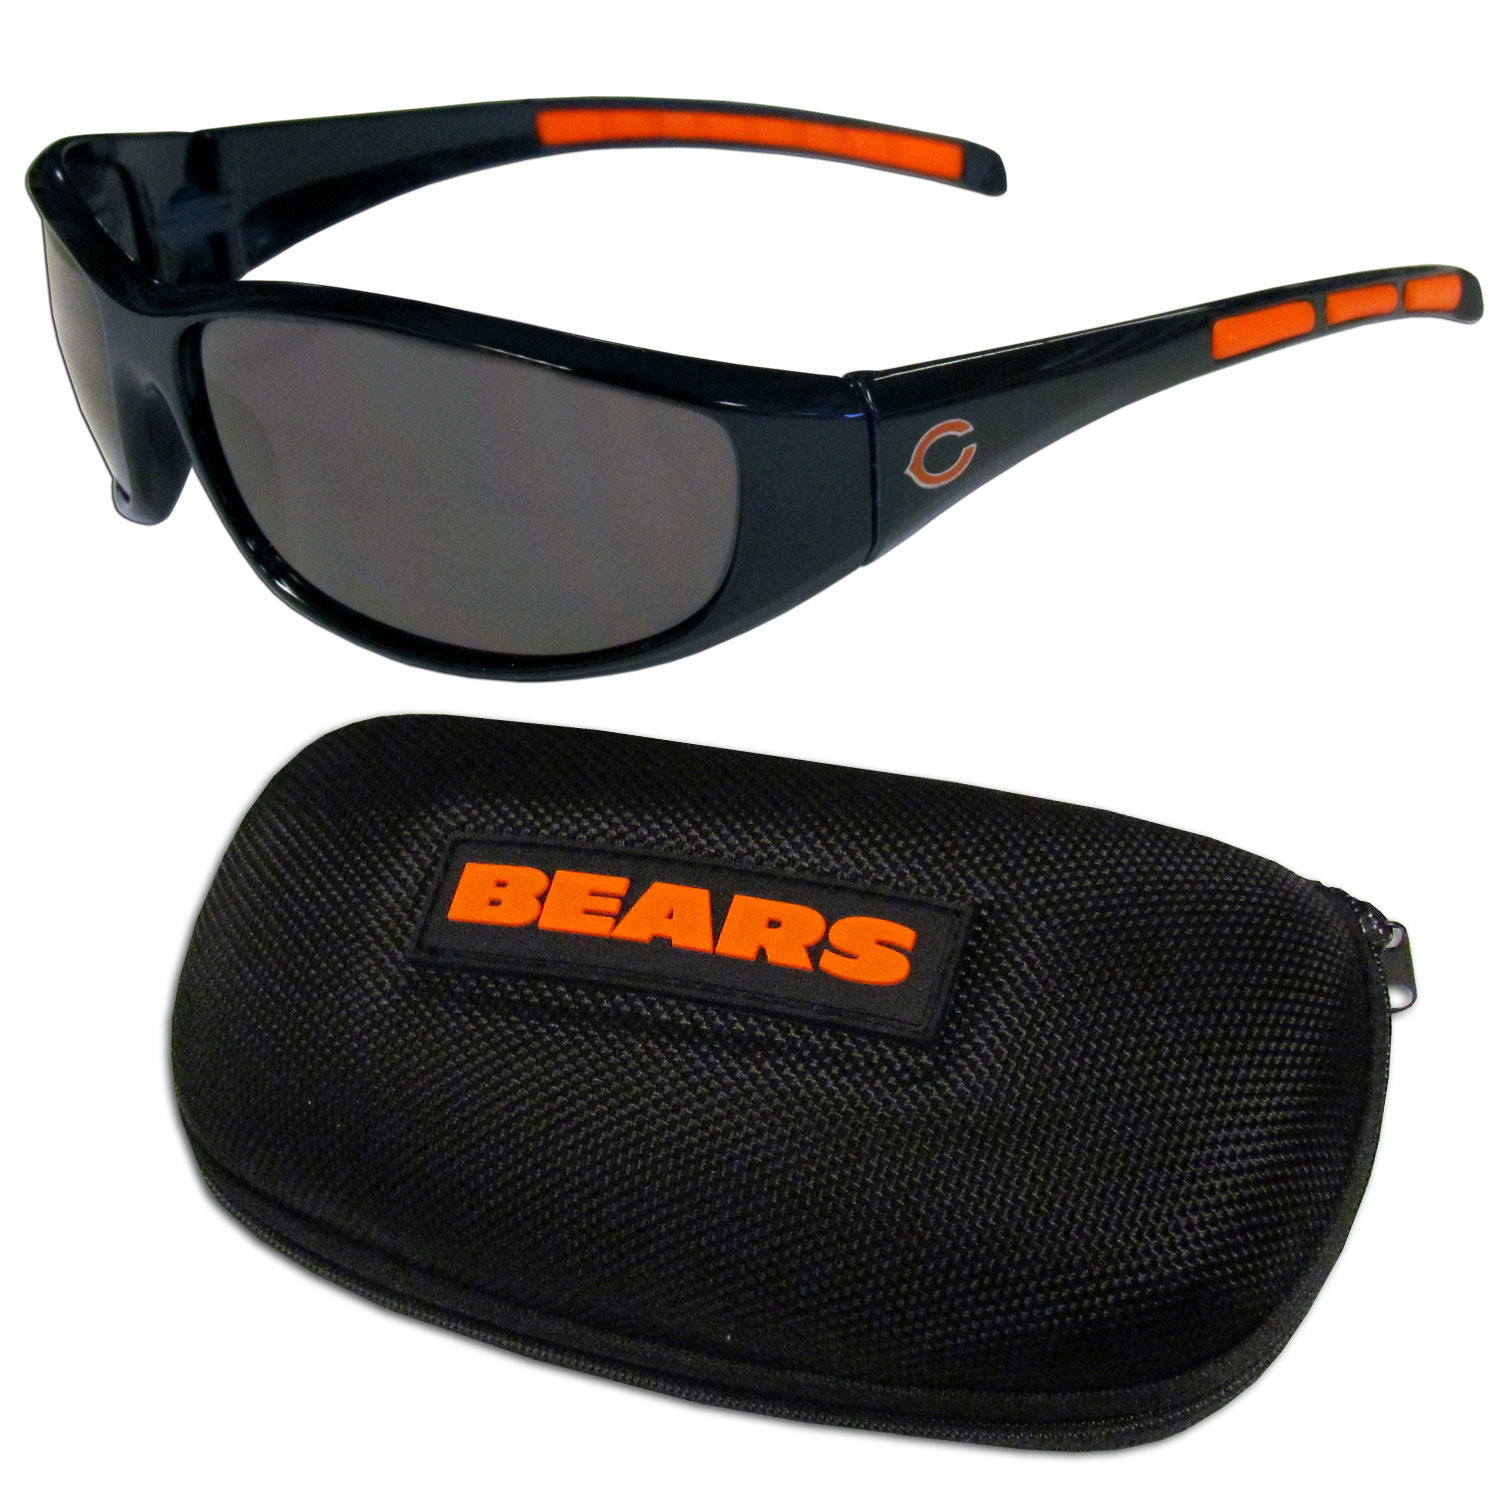 Chicago Bears Wrap Sunglass and Case Set - This great set includes a high quality pair of Chicago Bears wrap sunglasses and hard carrying case.